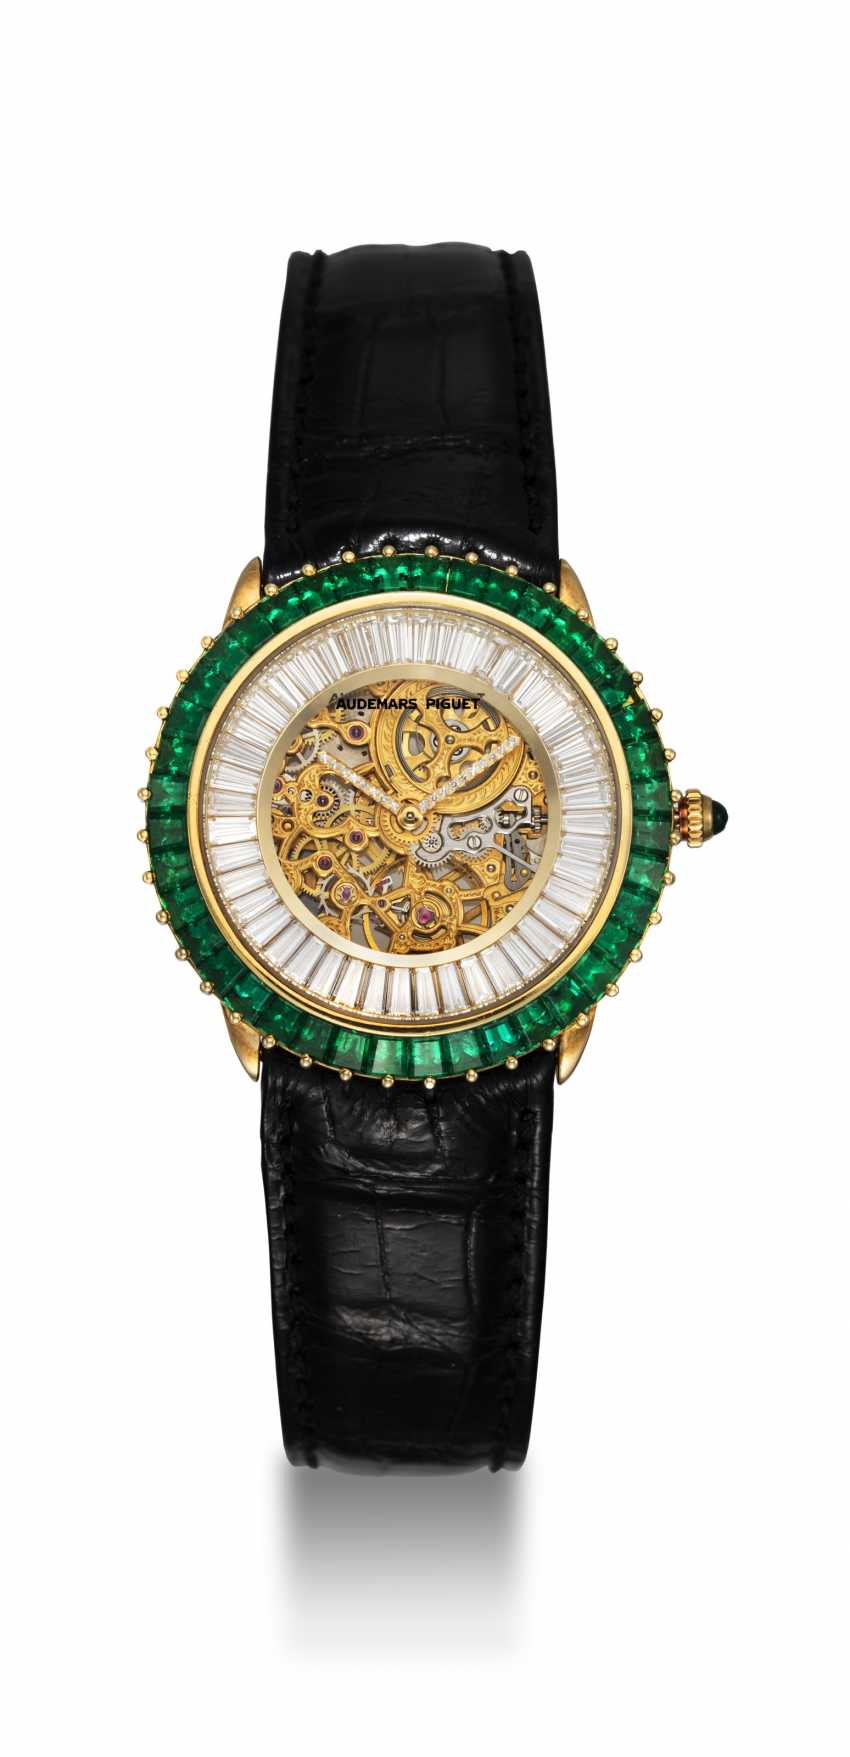 AUDEMARS PIGUET, A GENTS GOLD WRISTWATCH SET WITH EMERALDS, DIAMONDS AND SKELETONISED DIAL, ENGRAVED NO. 1 - photo 3